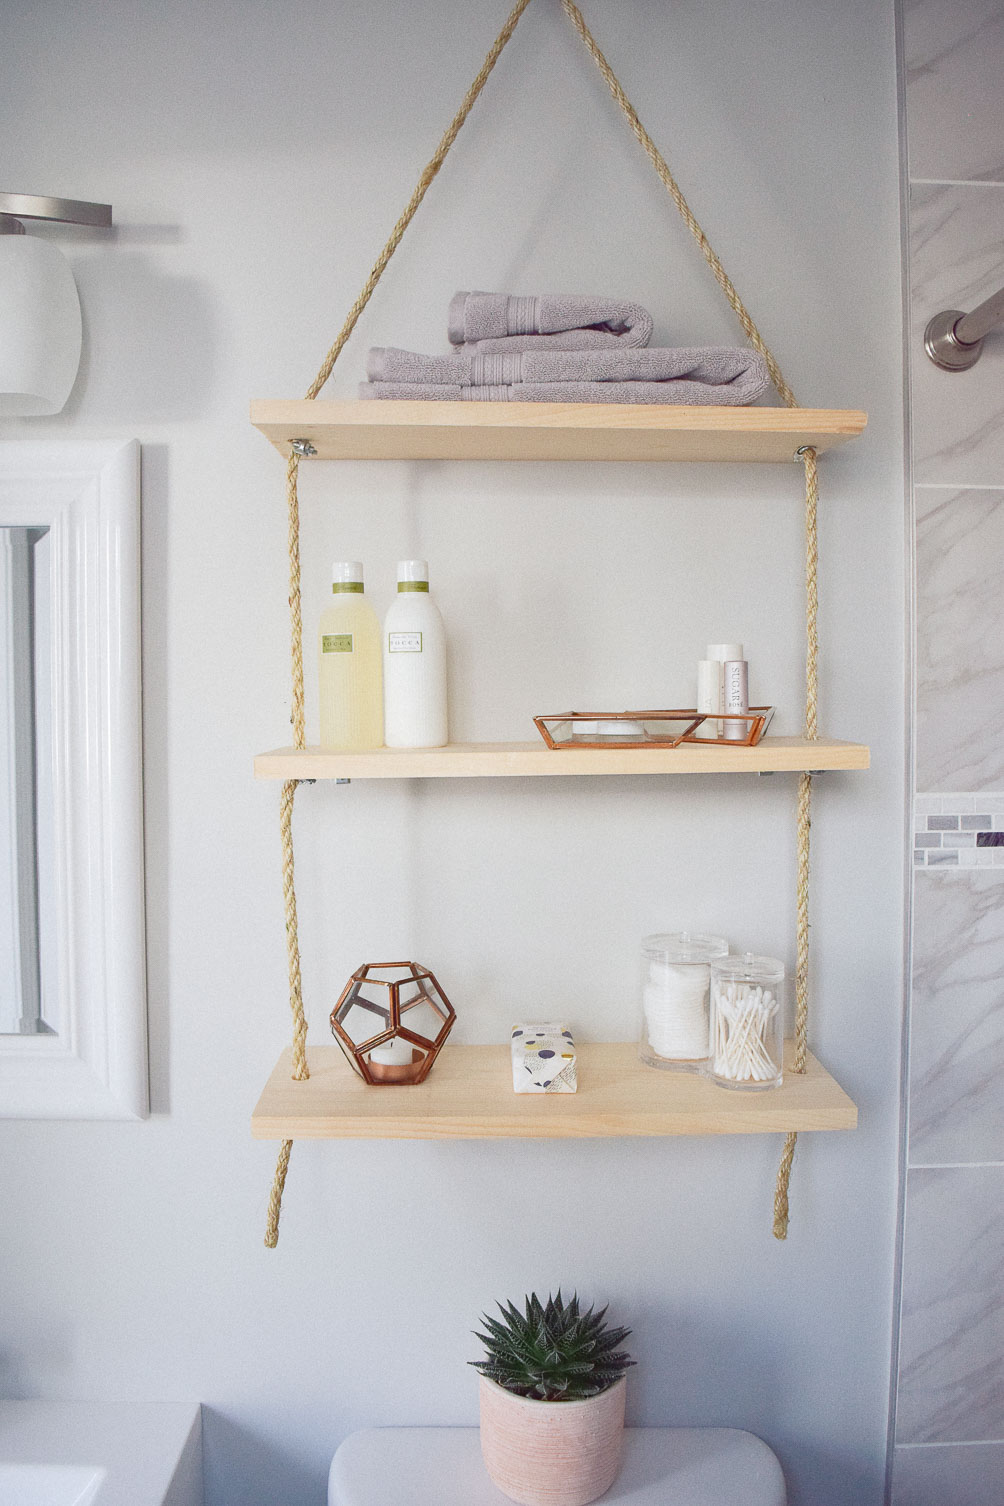 Divine Sharing An Idea To Update Home Decor Diy Hanging Shelves Bathroomstorage Diy Hanging Shelves One Brass Fox Bathroom Hanging Shelf Unit Steel Hanging Bathroom Shelf bathroom Bathroom Hanging Shelf